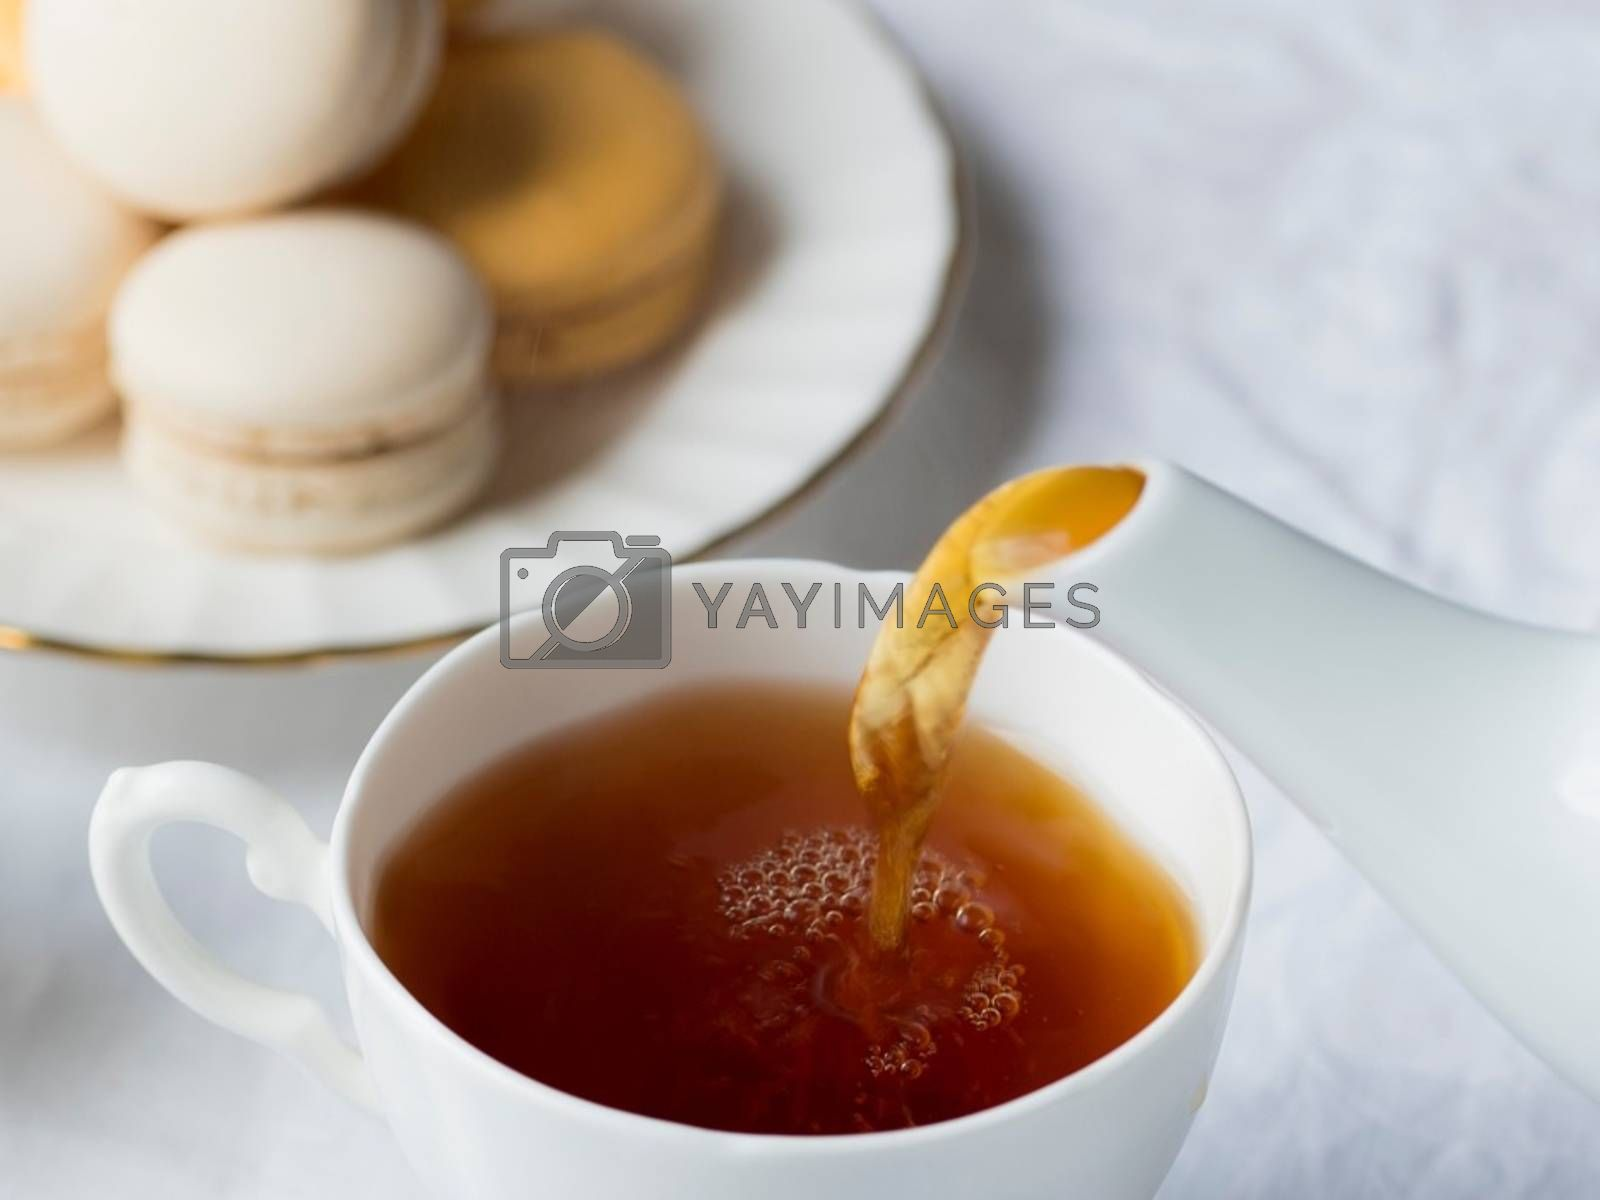 Royalty free image of Snapshot of tea and delicious tea cakes poured out of the jug on the table by balage941